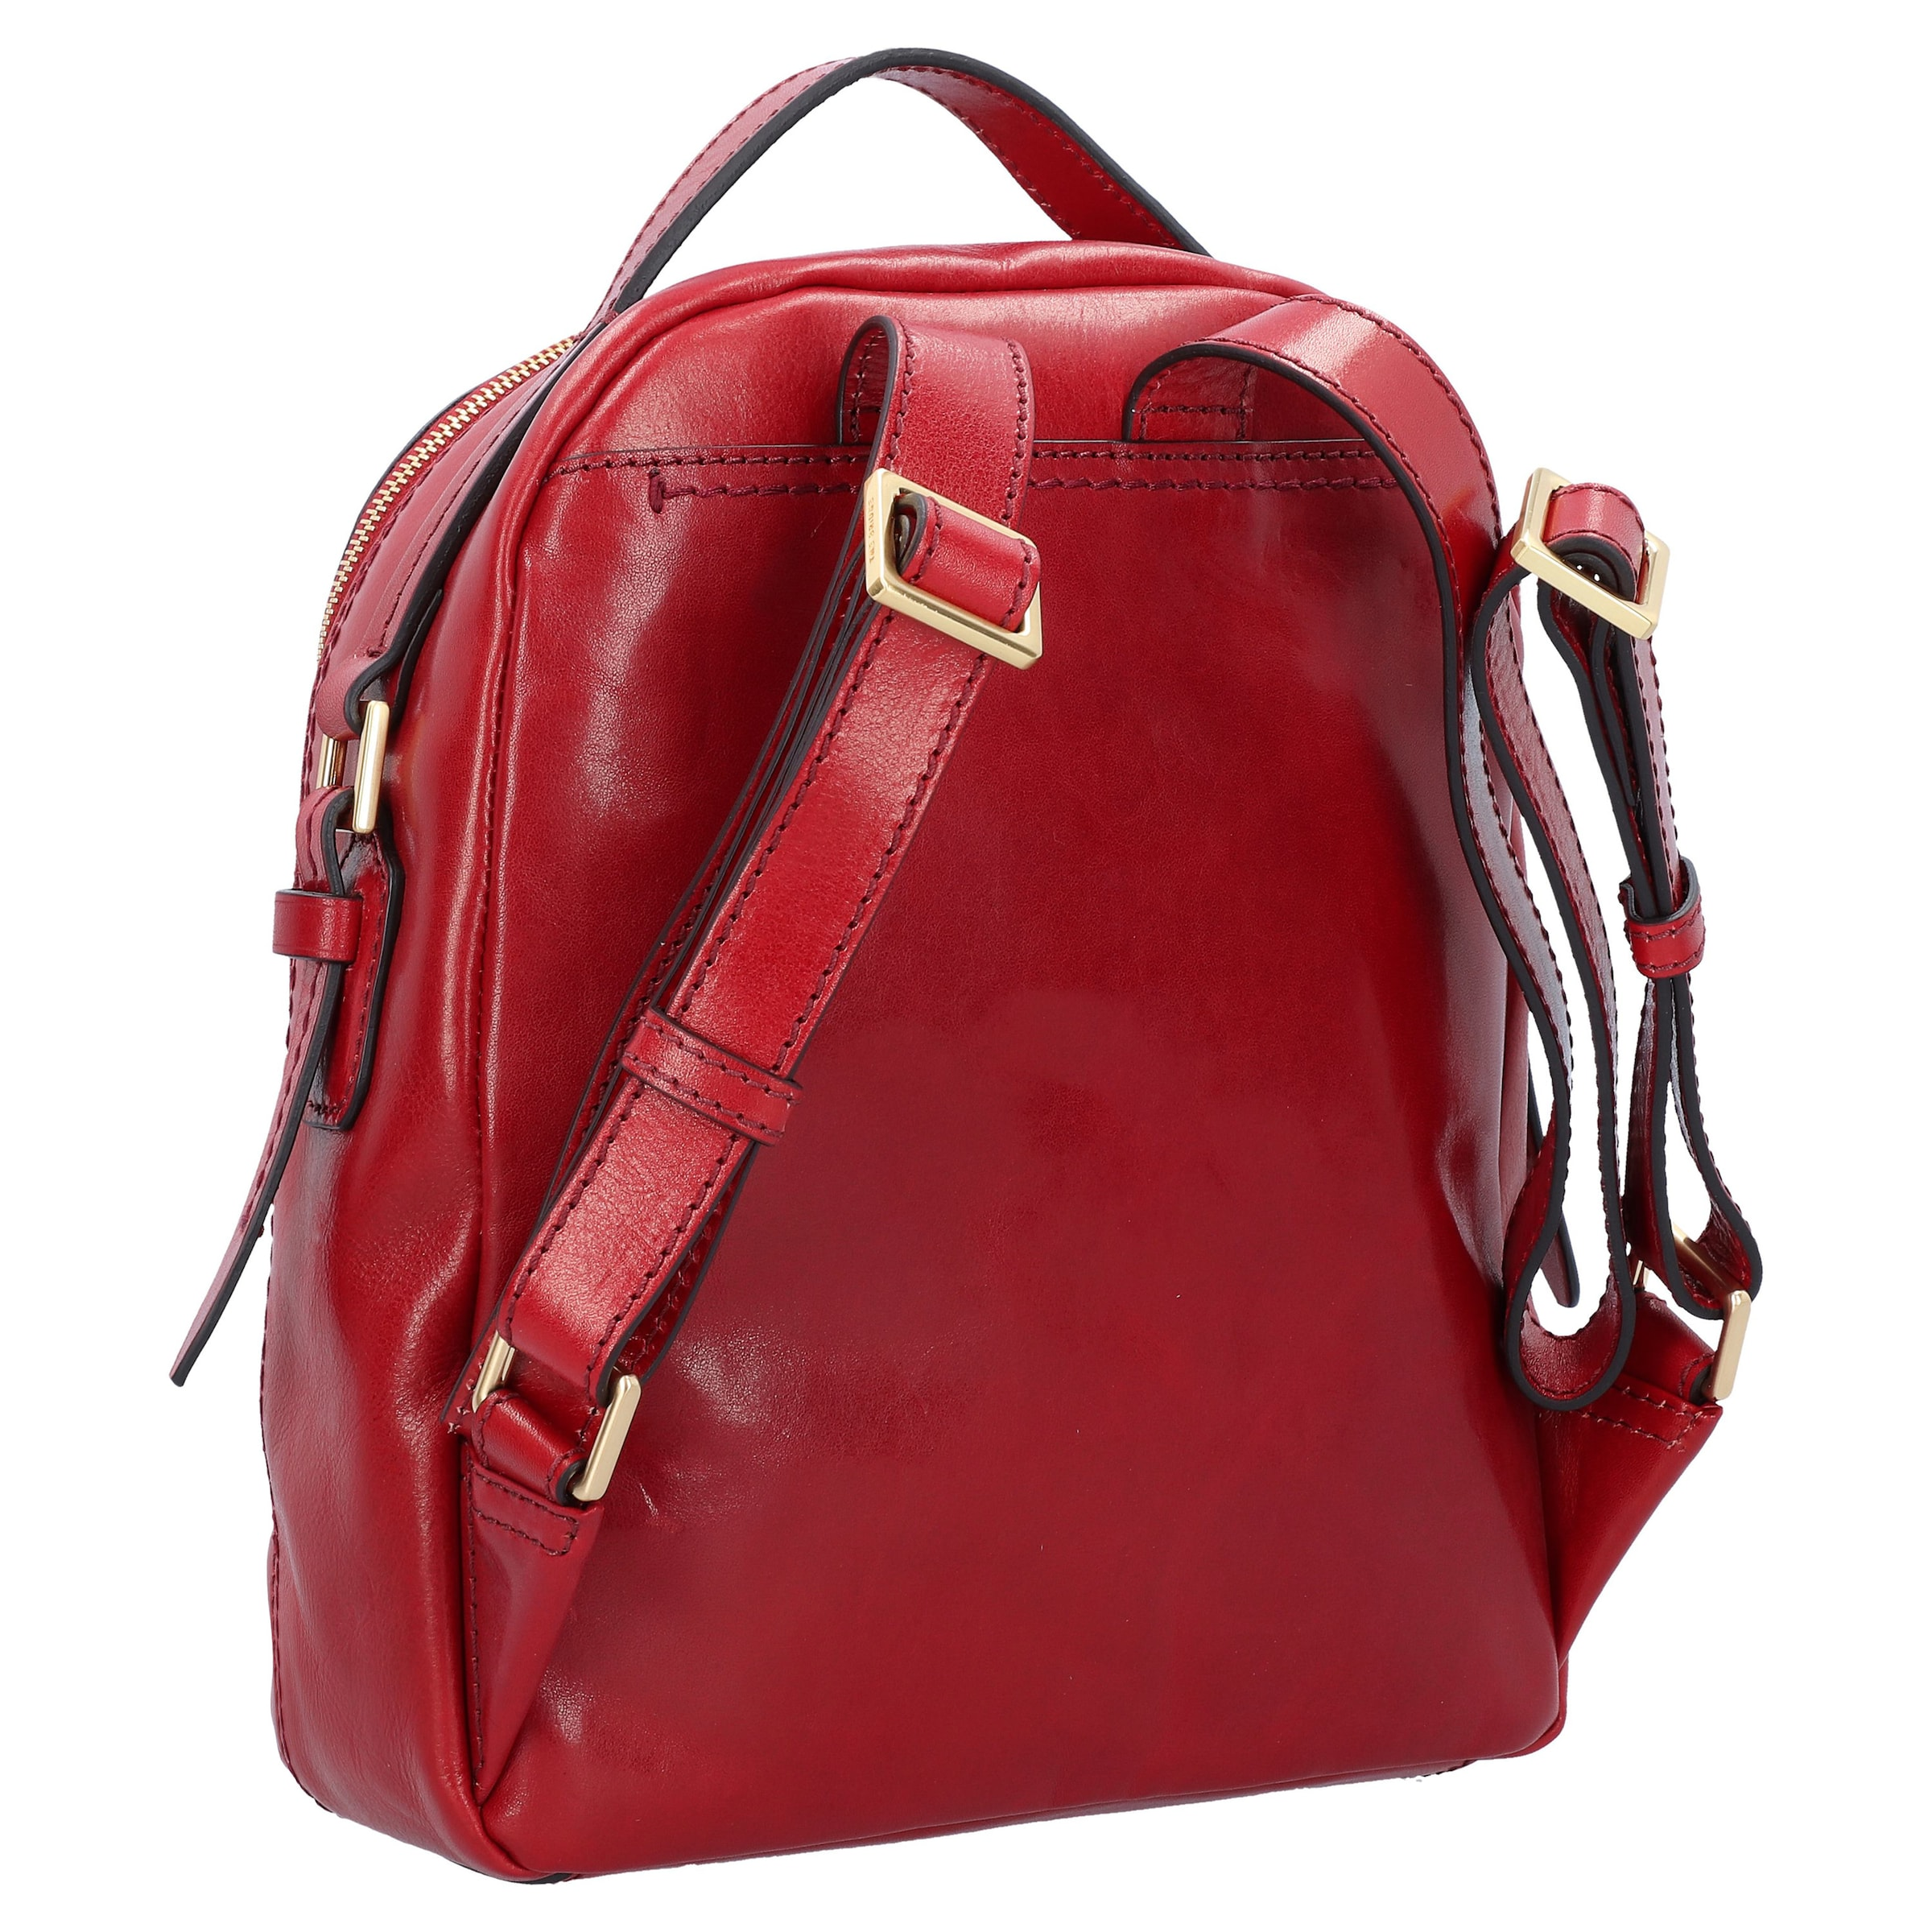 The Cm Bridge Rucksack Rot 30 'murakami In City' edBCoxr